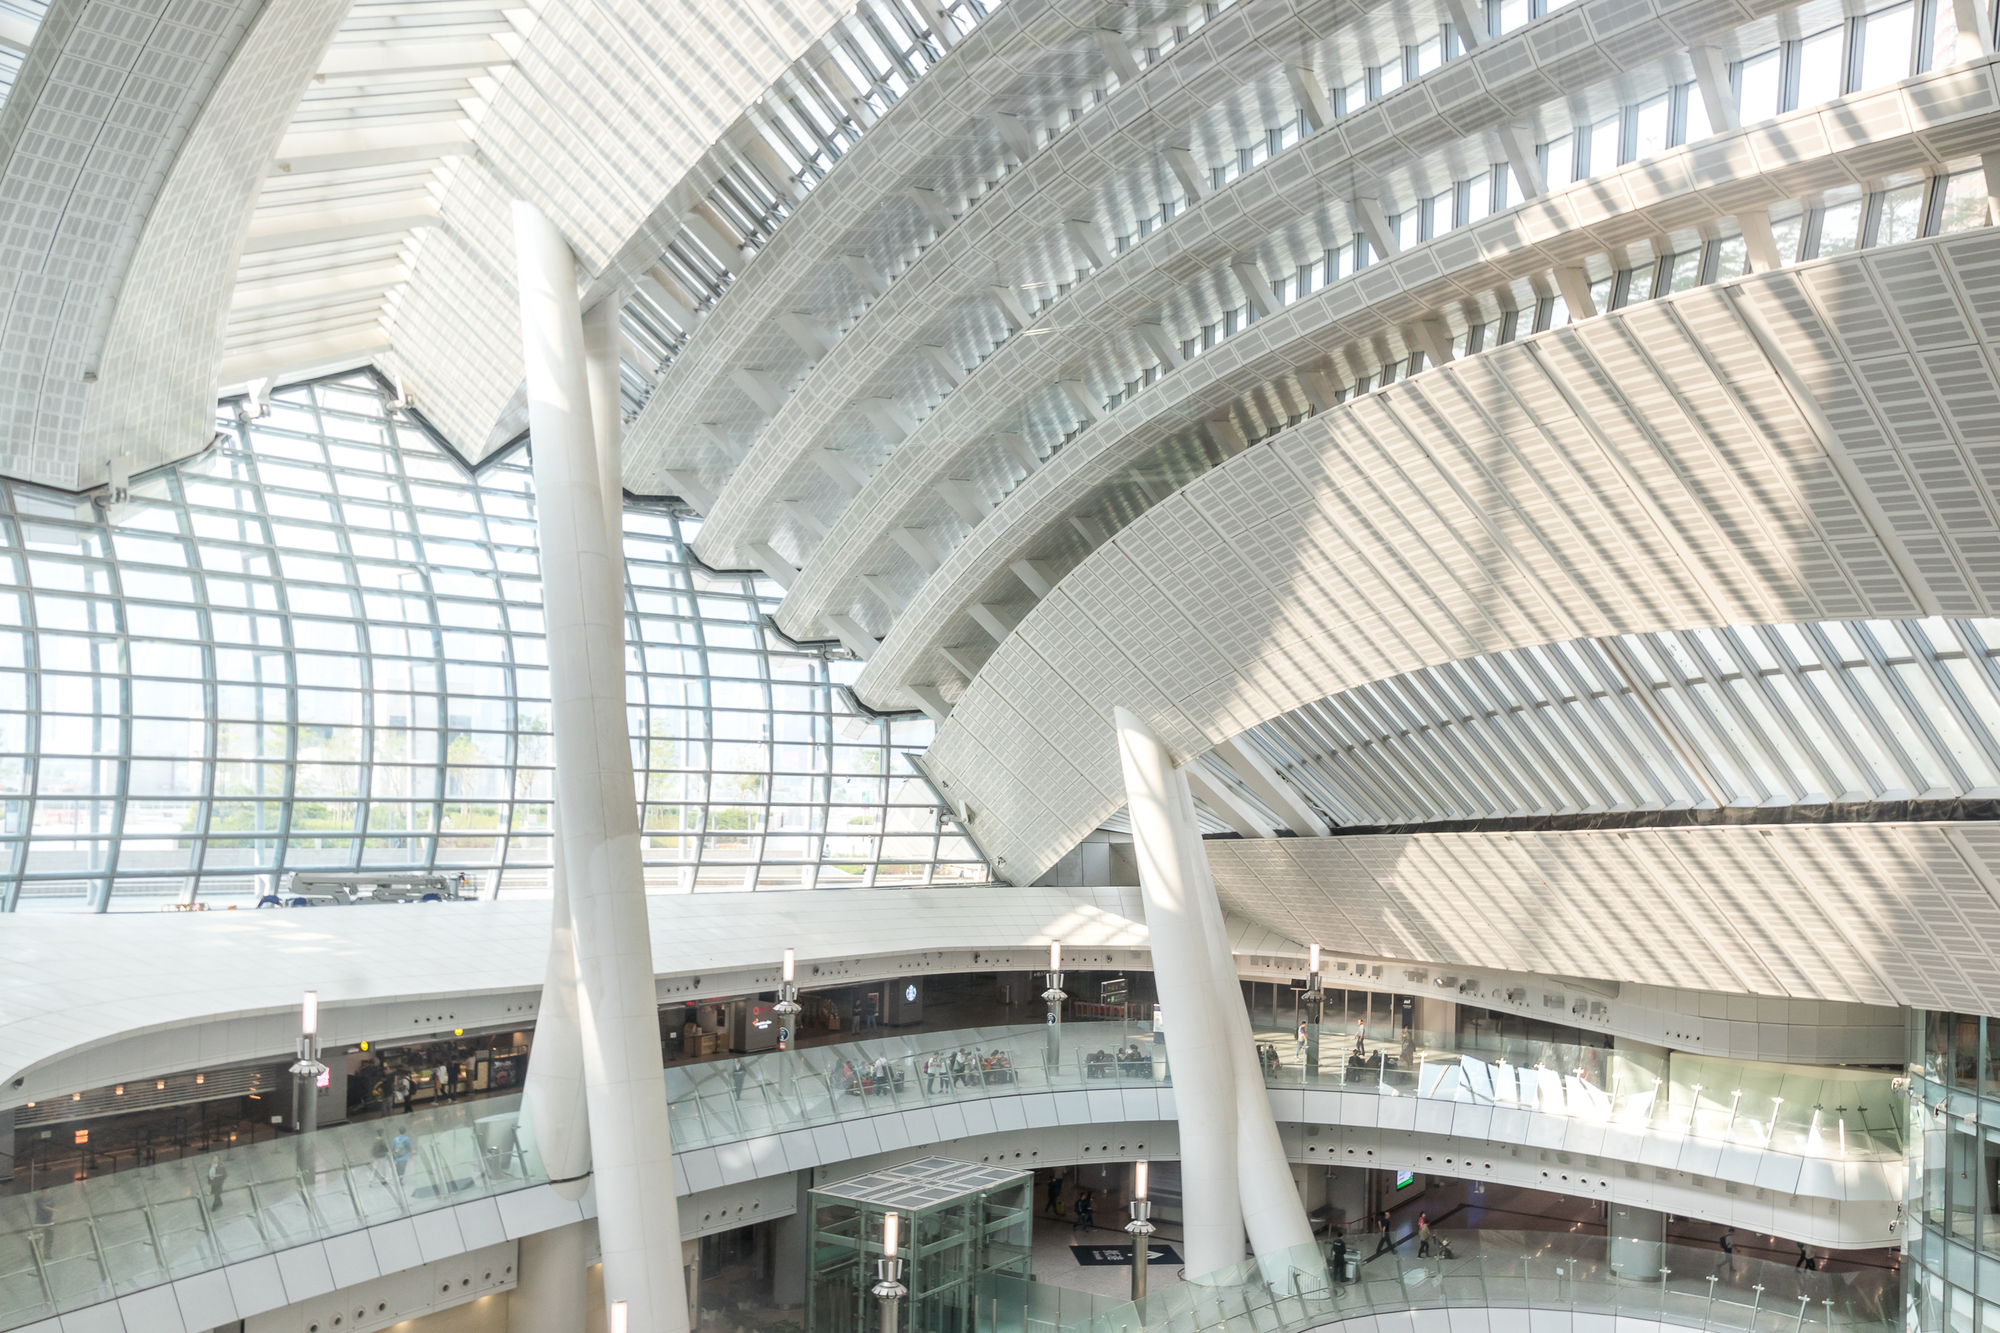 West Kowloon HSR Station Photographed Through the Lens of Kris Provoost